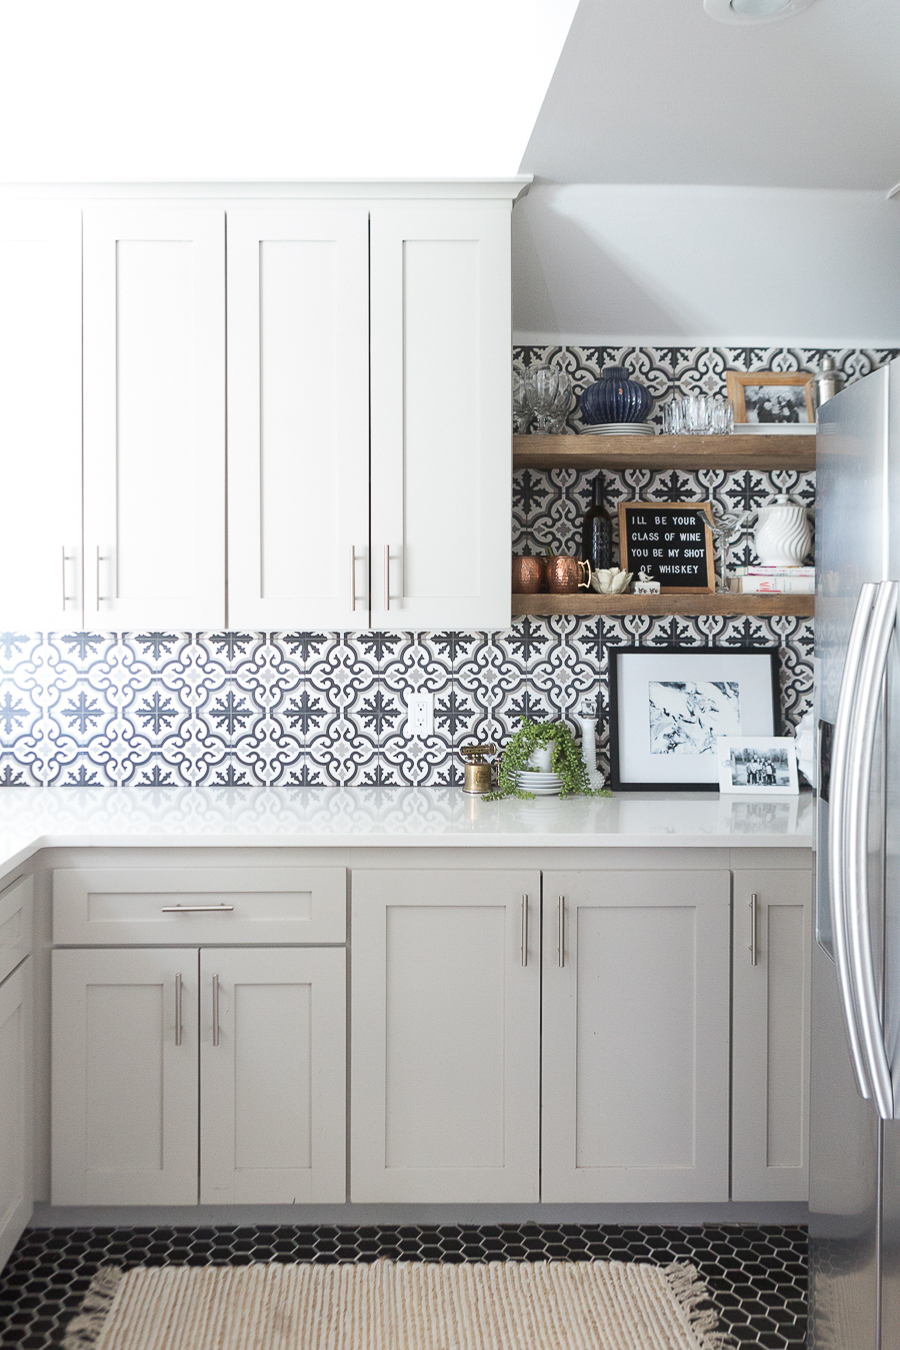 Affordable Ceramic Patterned Tile Backsplash And Flooring